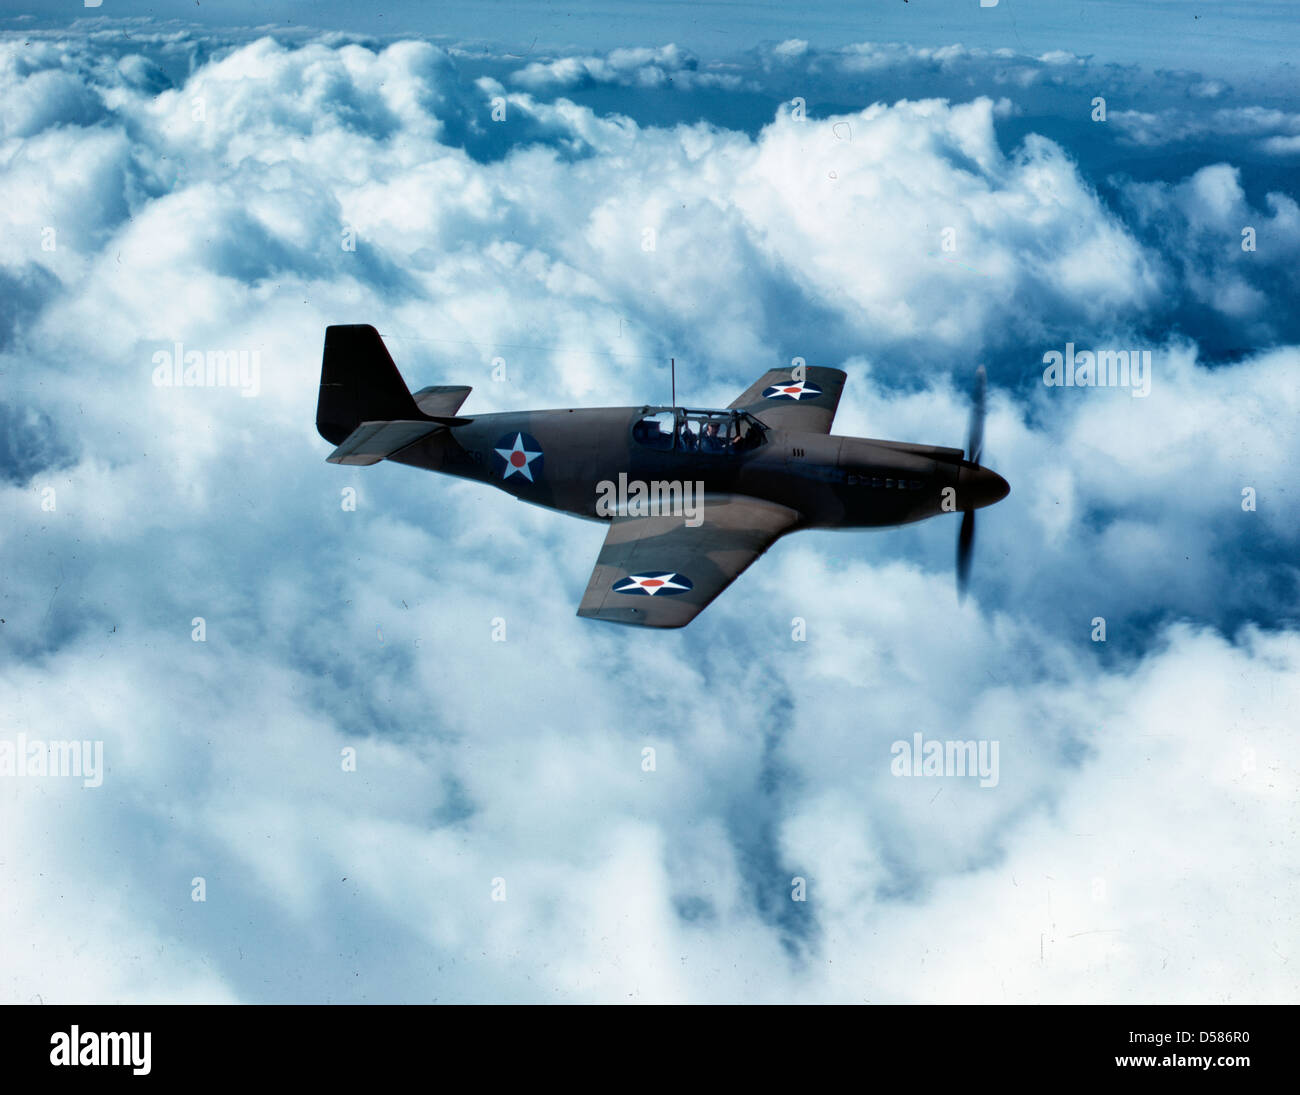 North American's P-51 Mustang Fighter is in service with Britain's Royal Air Force, P-51 flying, circa 1942 - Stock Image